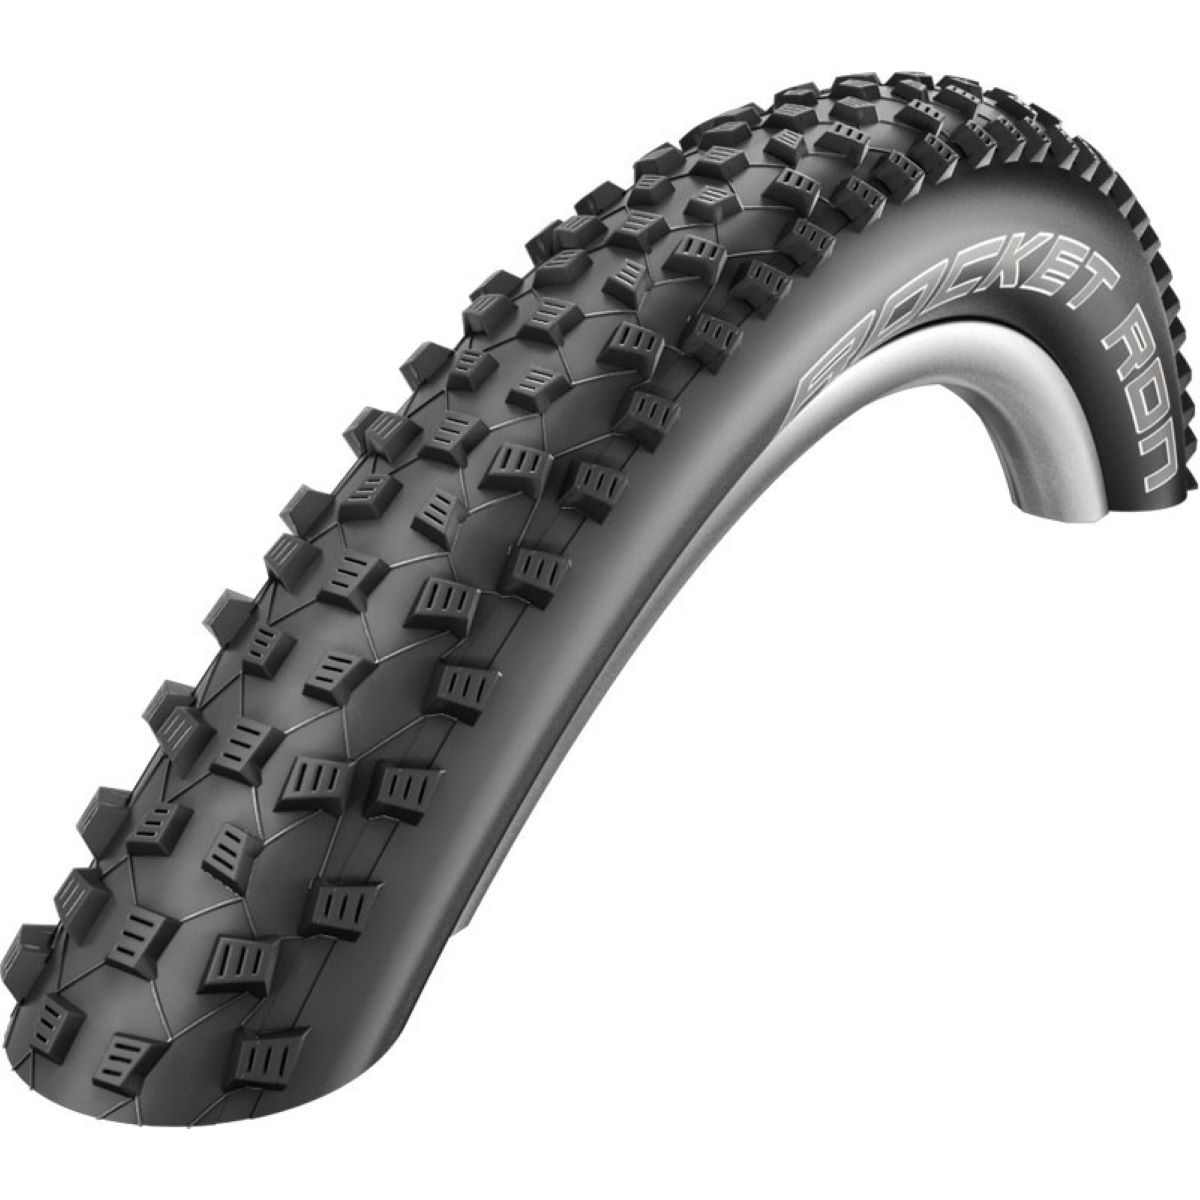 Pneu de cyclo-cross Schwalbe Rocket Ron Evo Liteskin (souple) - 700 x 33c Noir Pneus cyclo-cross